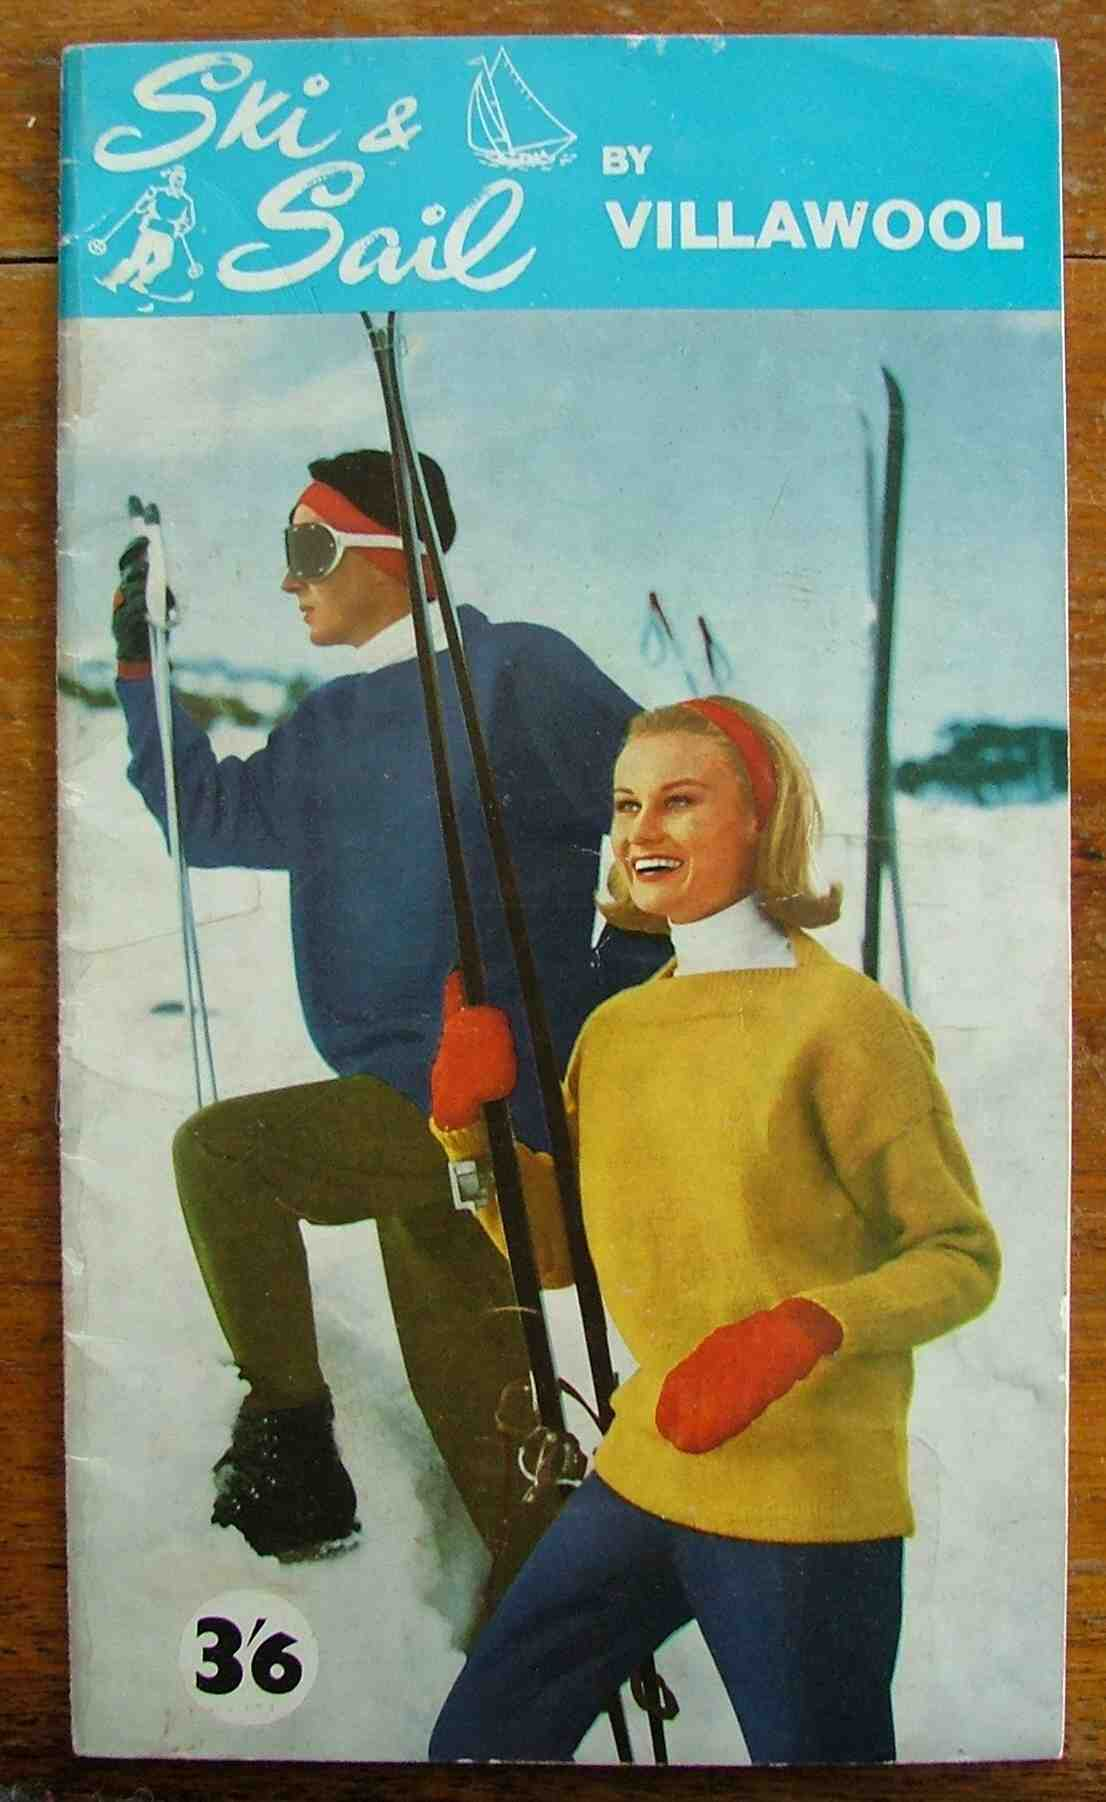 Ski and sail by Villawool front cover. photo source: theartofcostume.wordpress.com